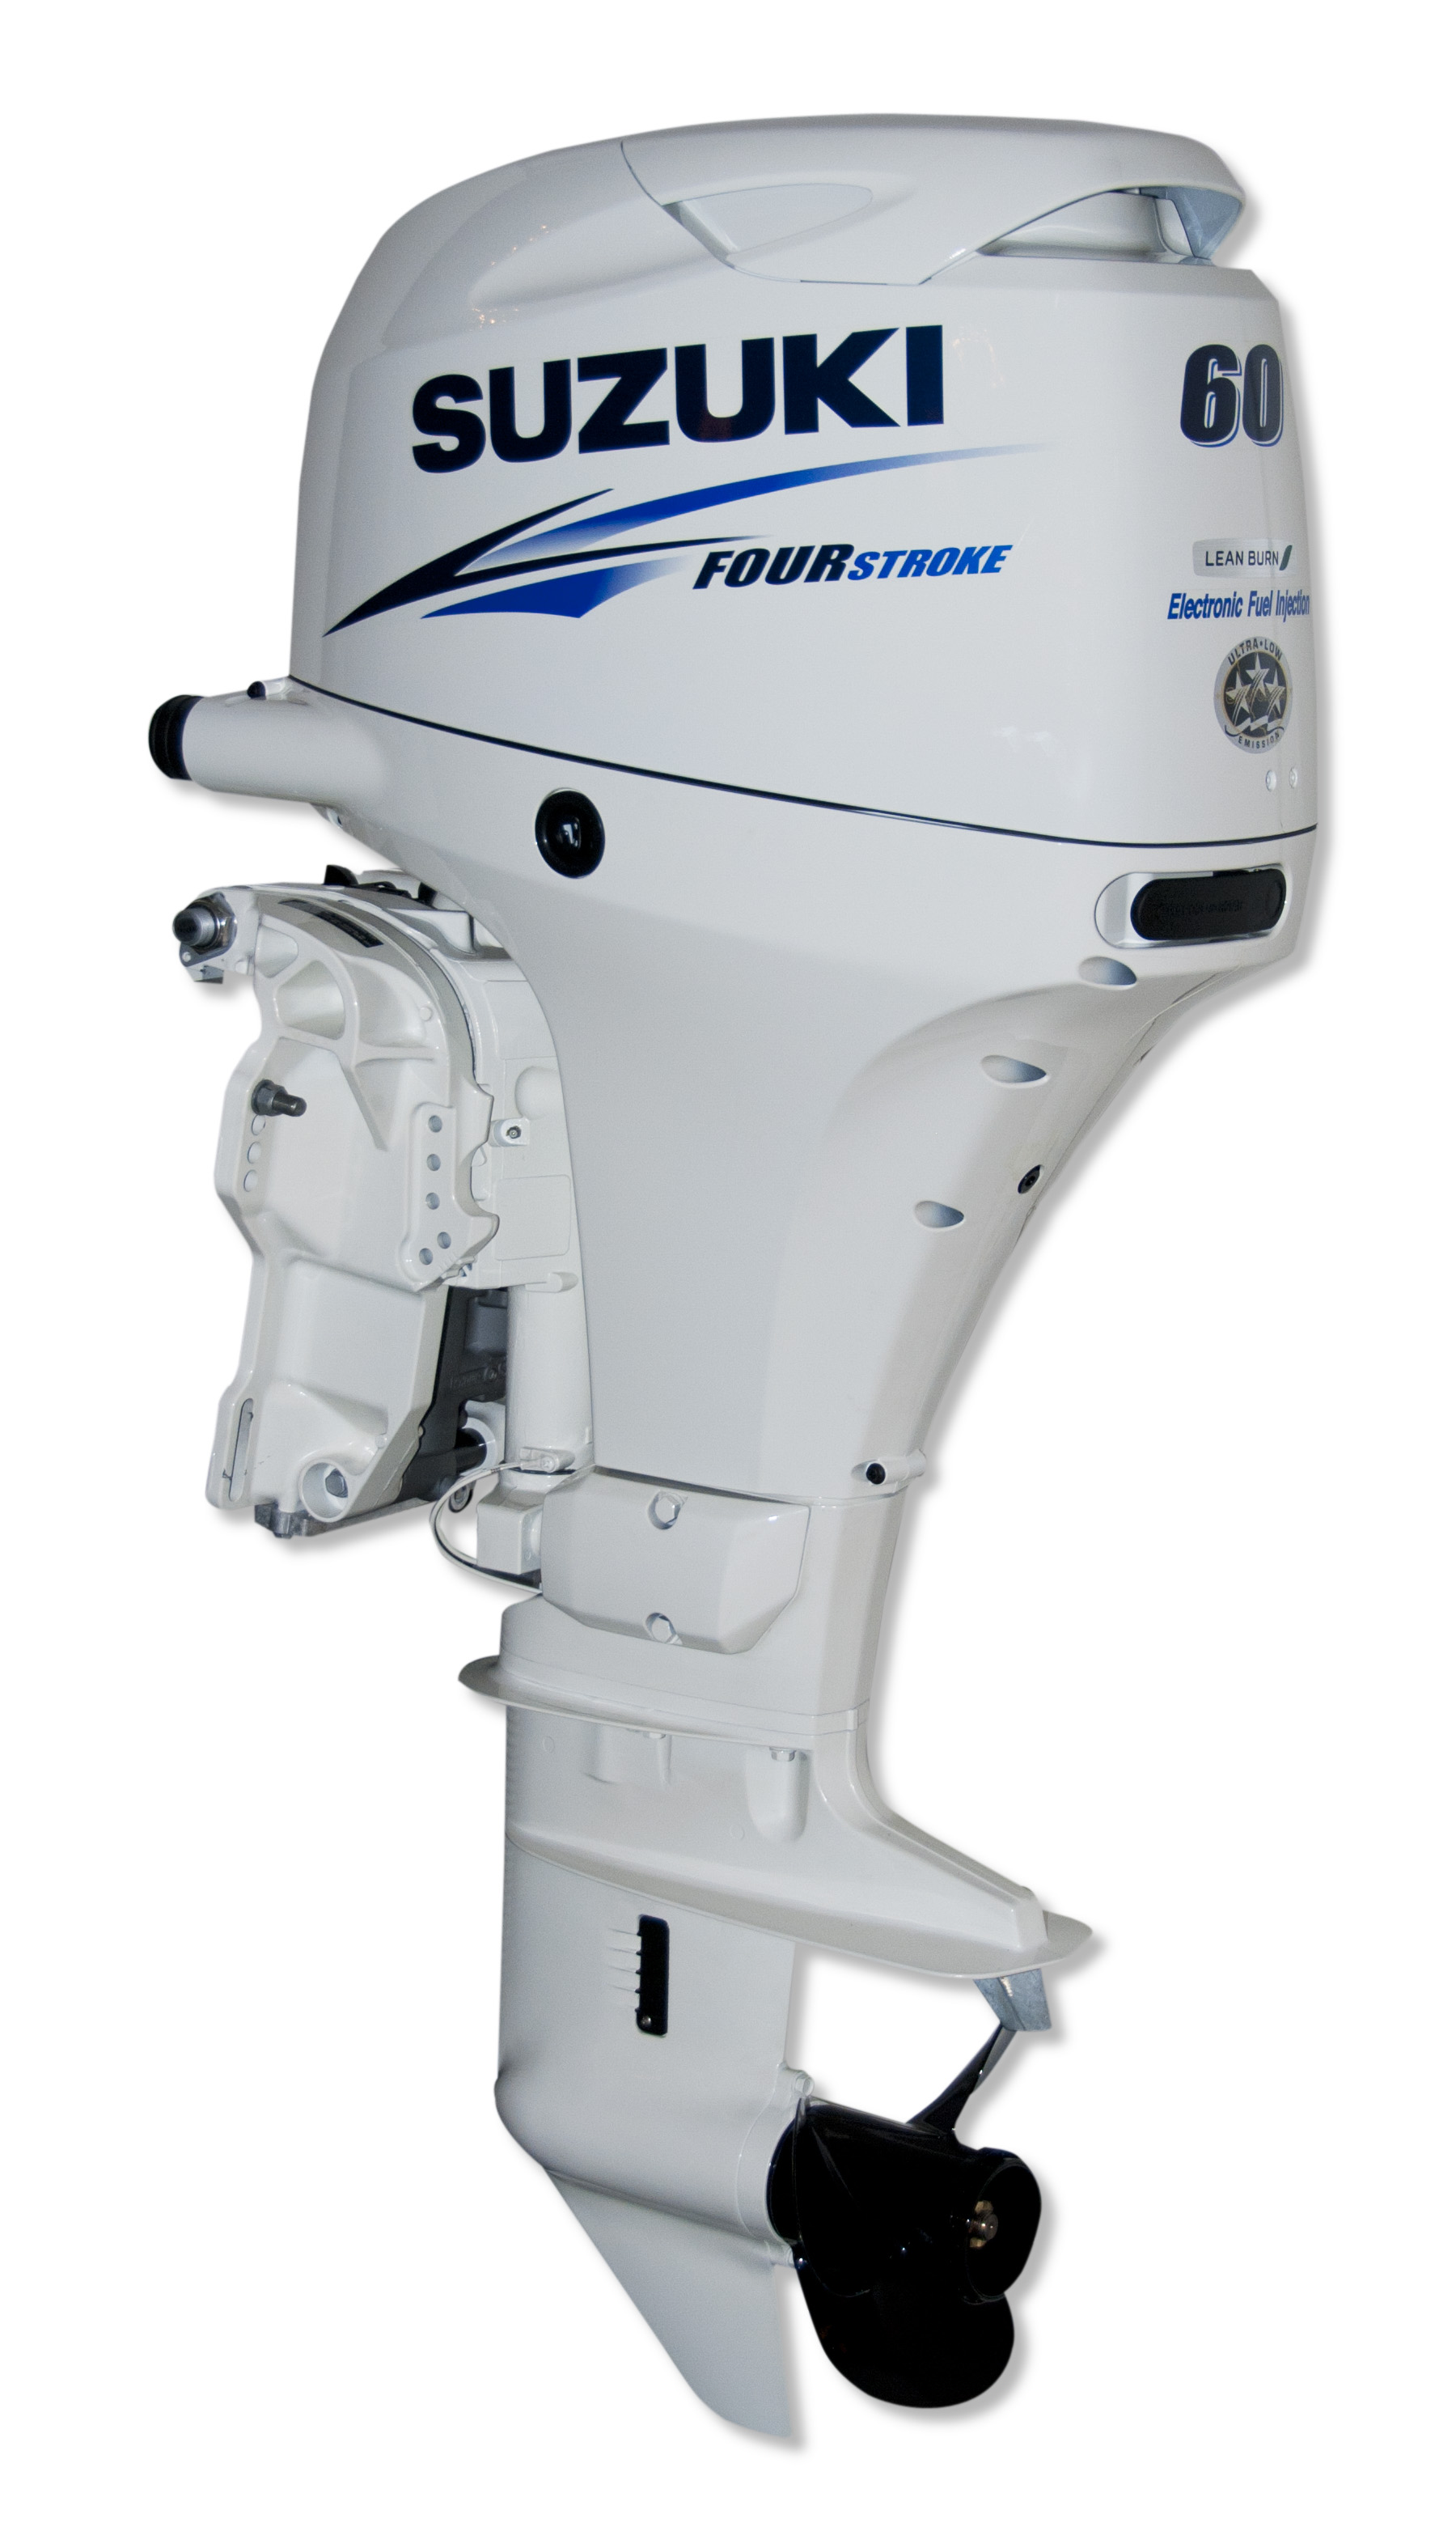 Image gallery suzuki outboards for Suzuki outboard motor repair